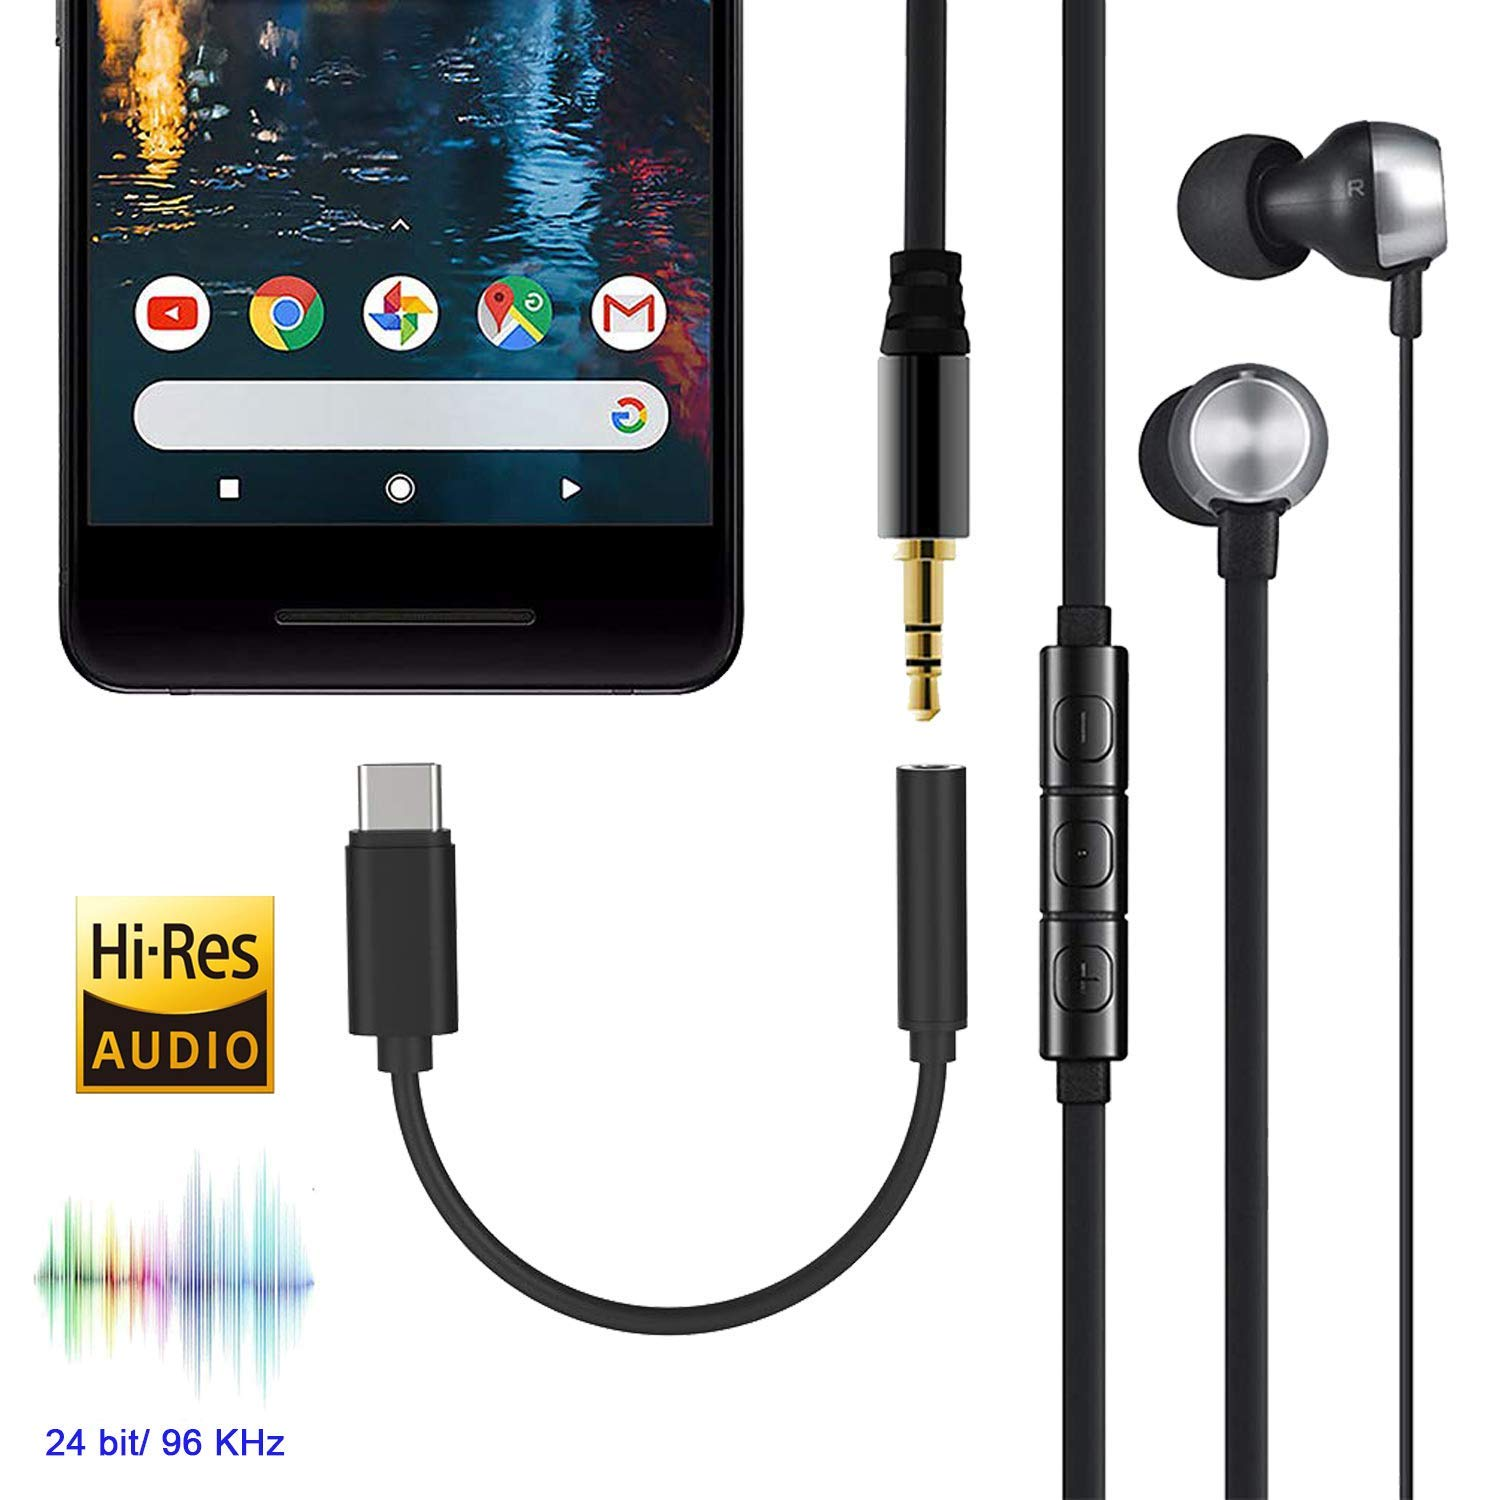 USB-C to 3.5 mm Headphone Jack Adapter Connector USB Type C to 3.5mm AUX Cables Audio Jack Earphone Adaptor for iPad Pro//MacBook Google Pixel 3//2 XL,Huawei P30 Pro//Mate 20//20 Pro,Samsung A8S-Black